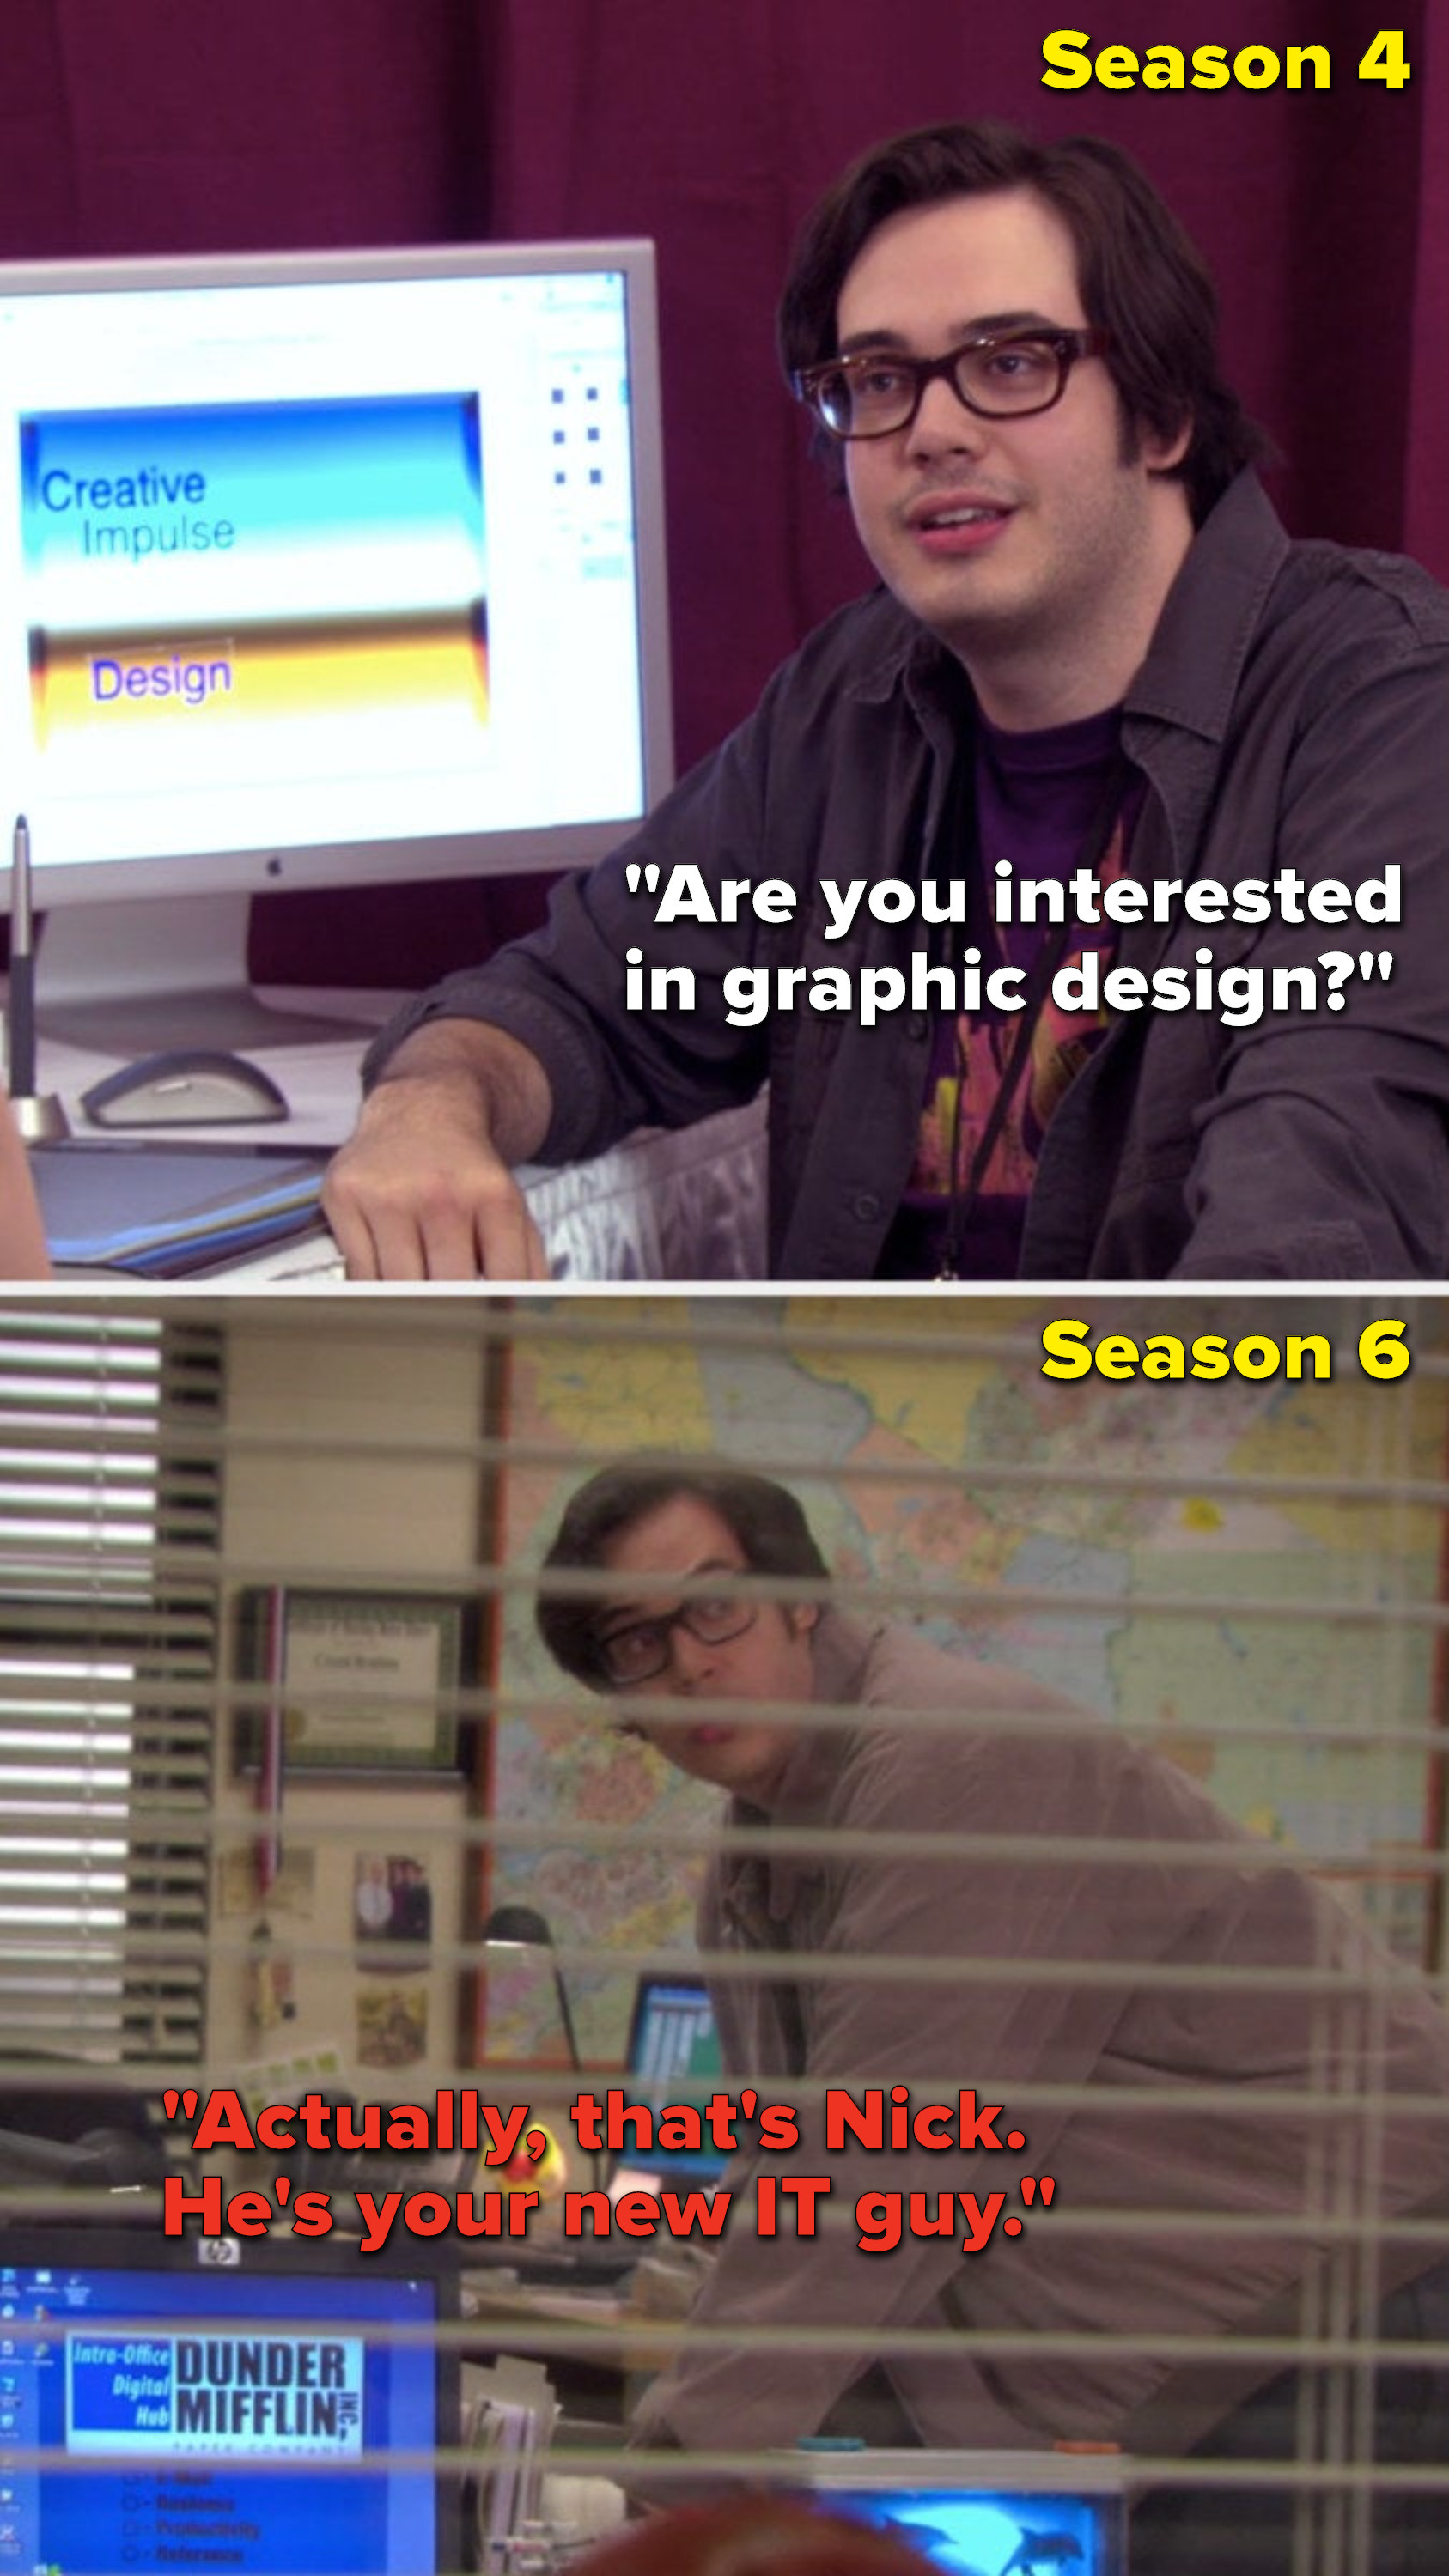 """In Season 4, Nelson Franklin plays a character who says, """"Are you interested in graphic design,"""" and in Season 6 he play a character about whom Gabe says, """"Actually, that's Nick, he's your new IT guy"""""""